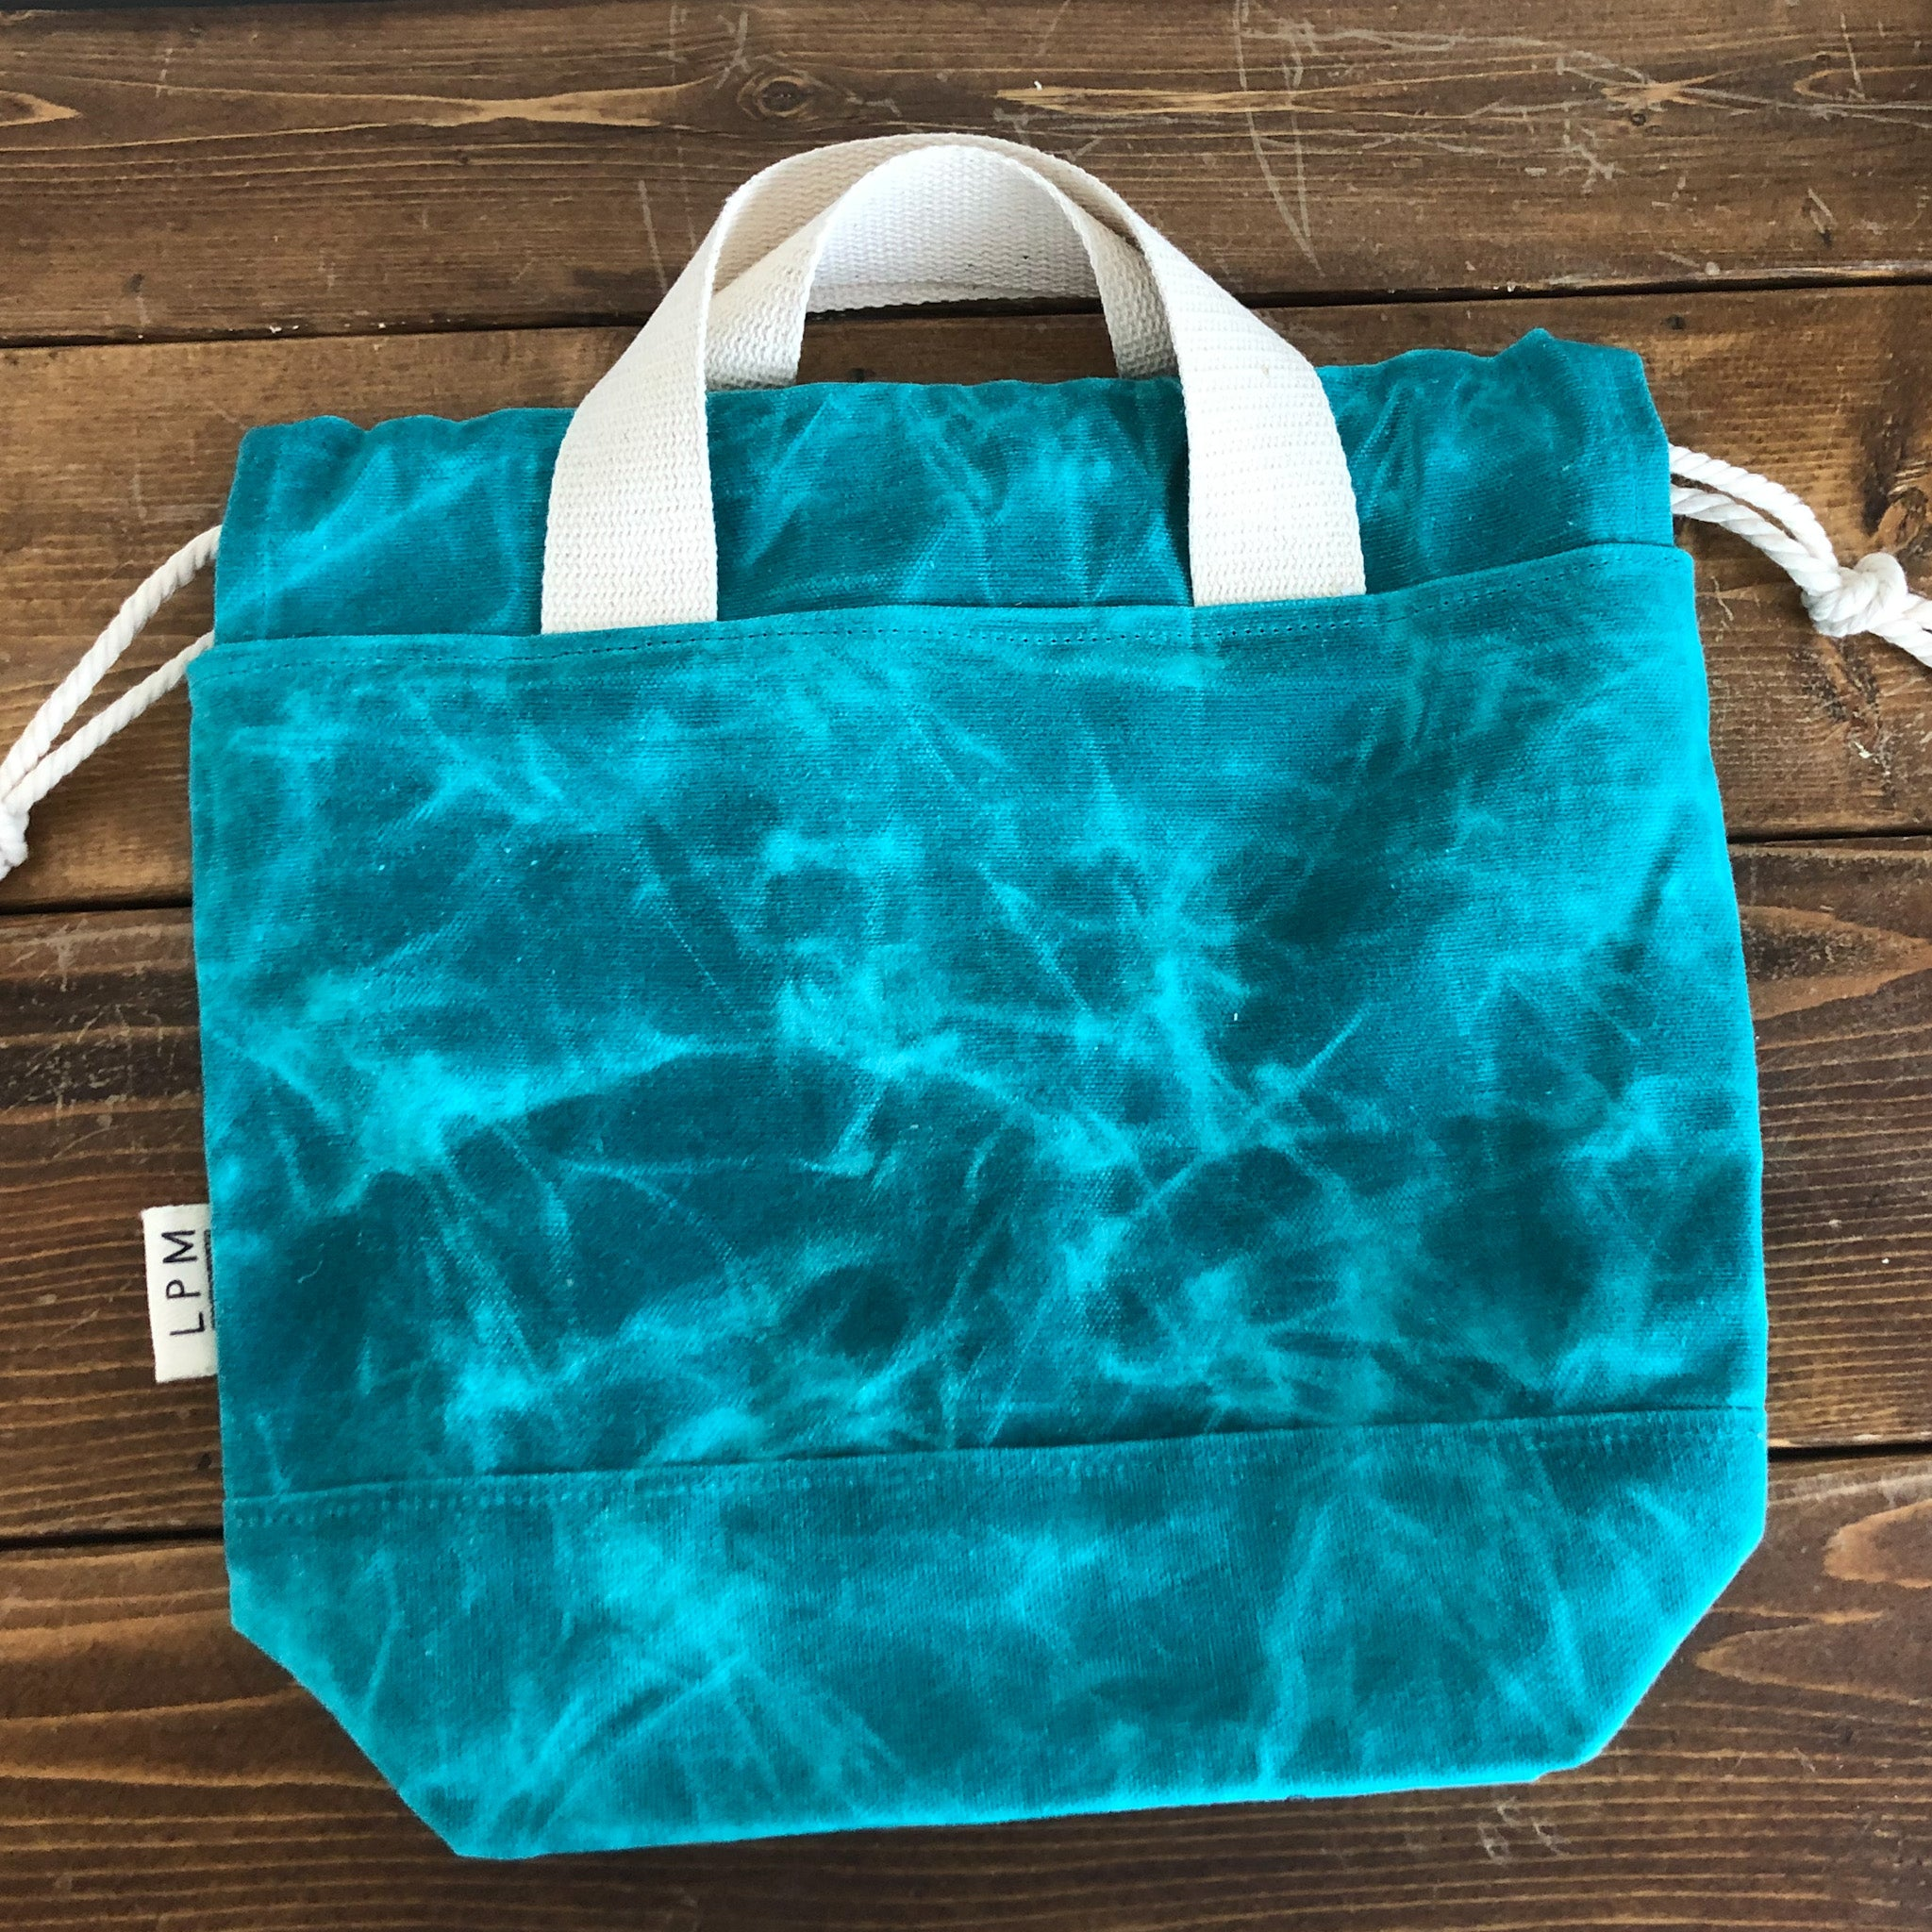 Waxed Canvas Project Bag - Turquoise